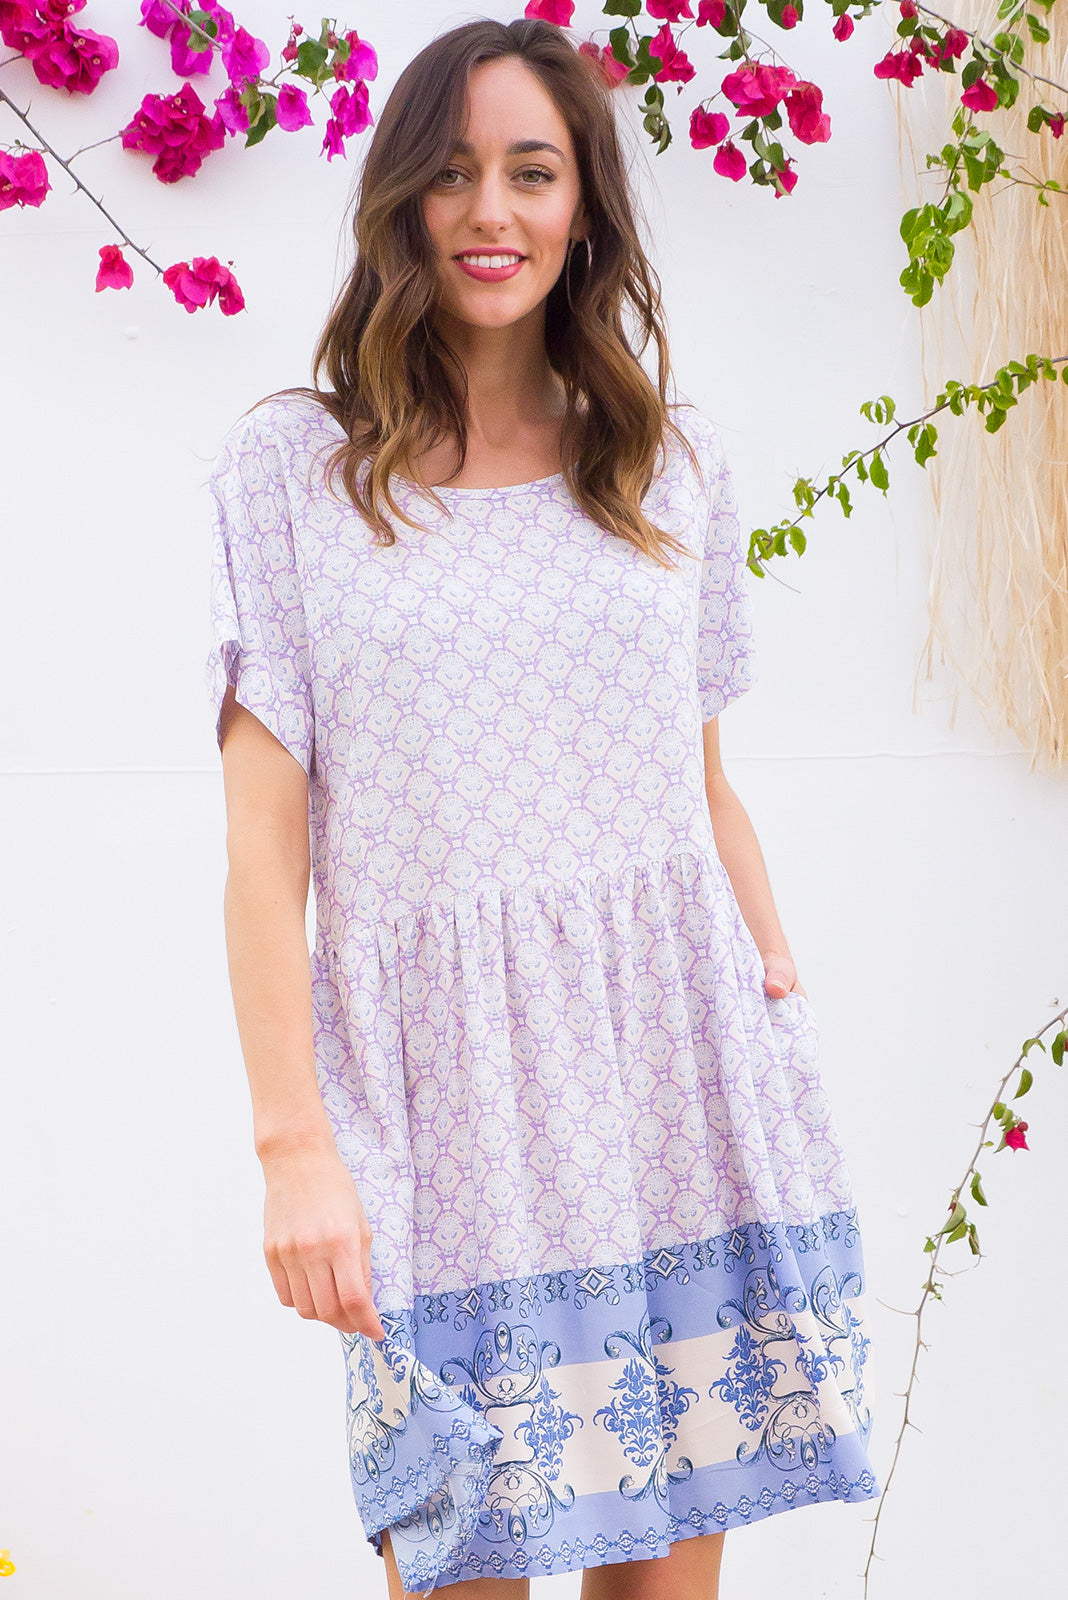 Blue Moon Lilac Lee Dress has a easy to wear relaxed fit and features cuffed sleeves, button tabs at the waist and comes in a dreamy cream and lilac border print on woven rayon